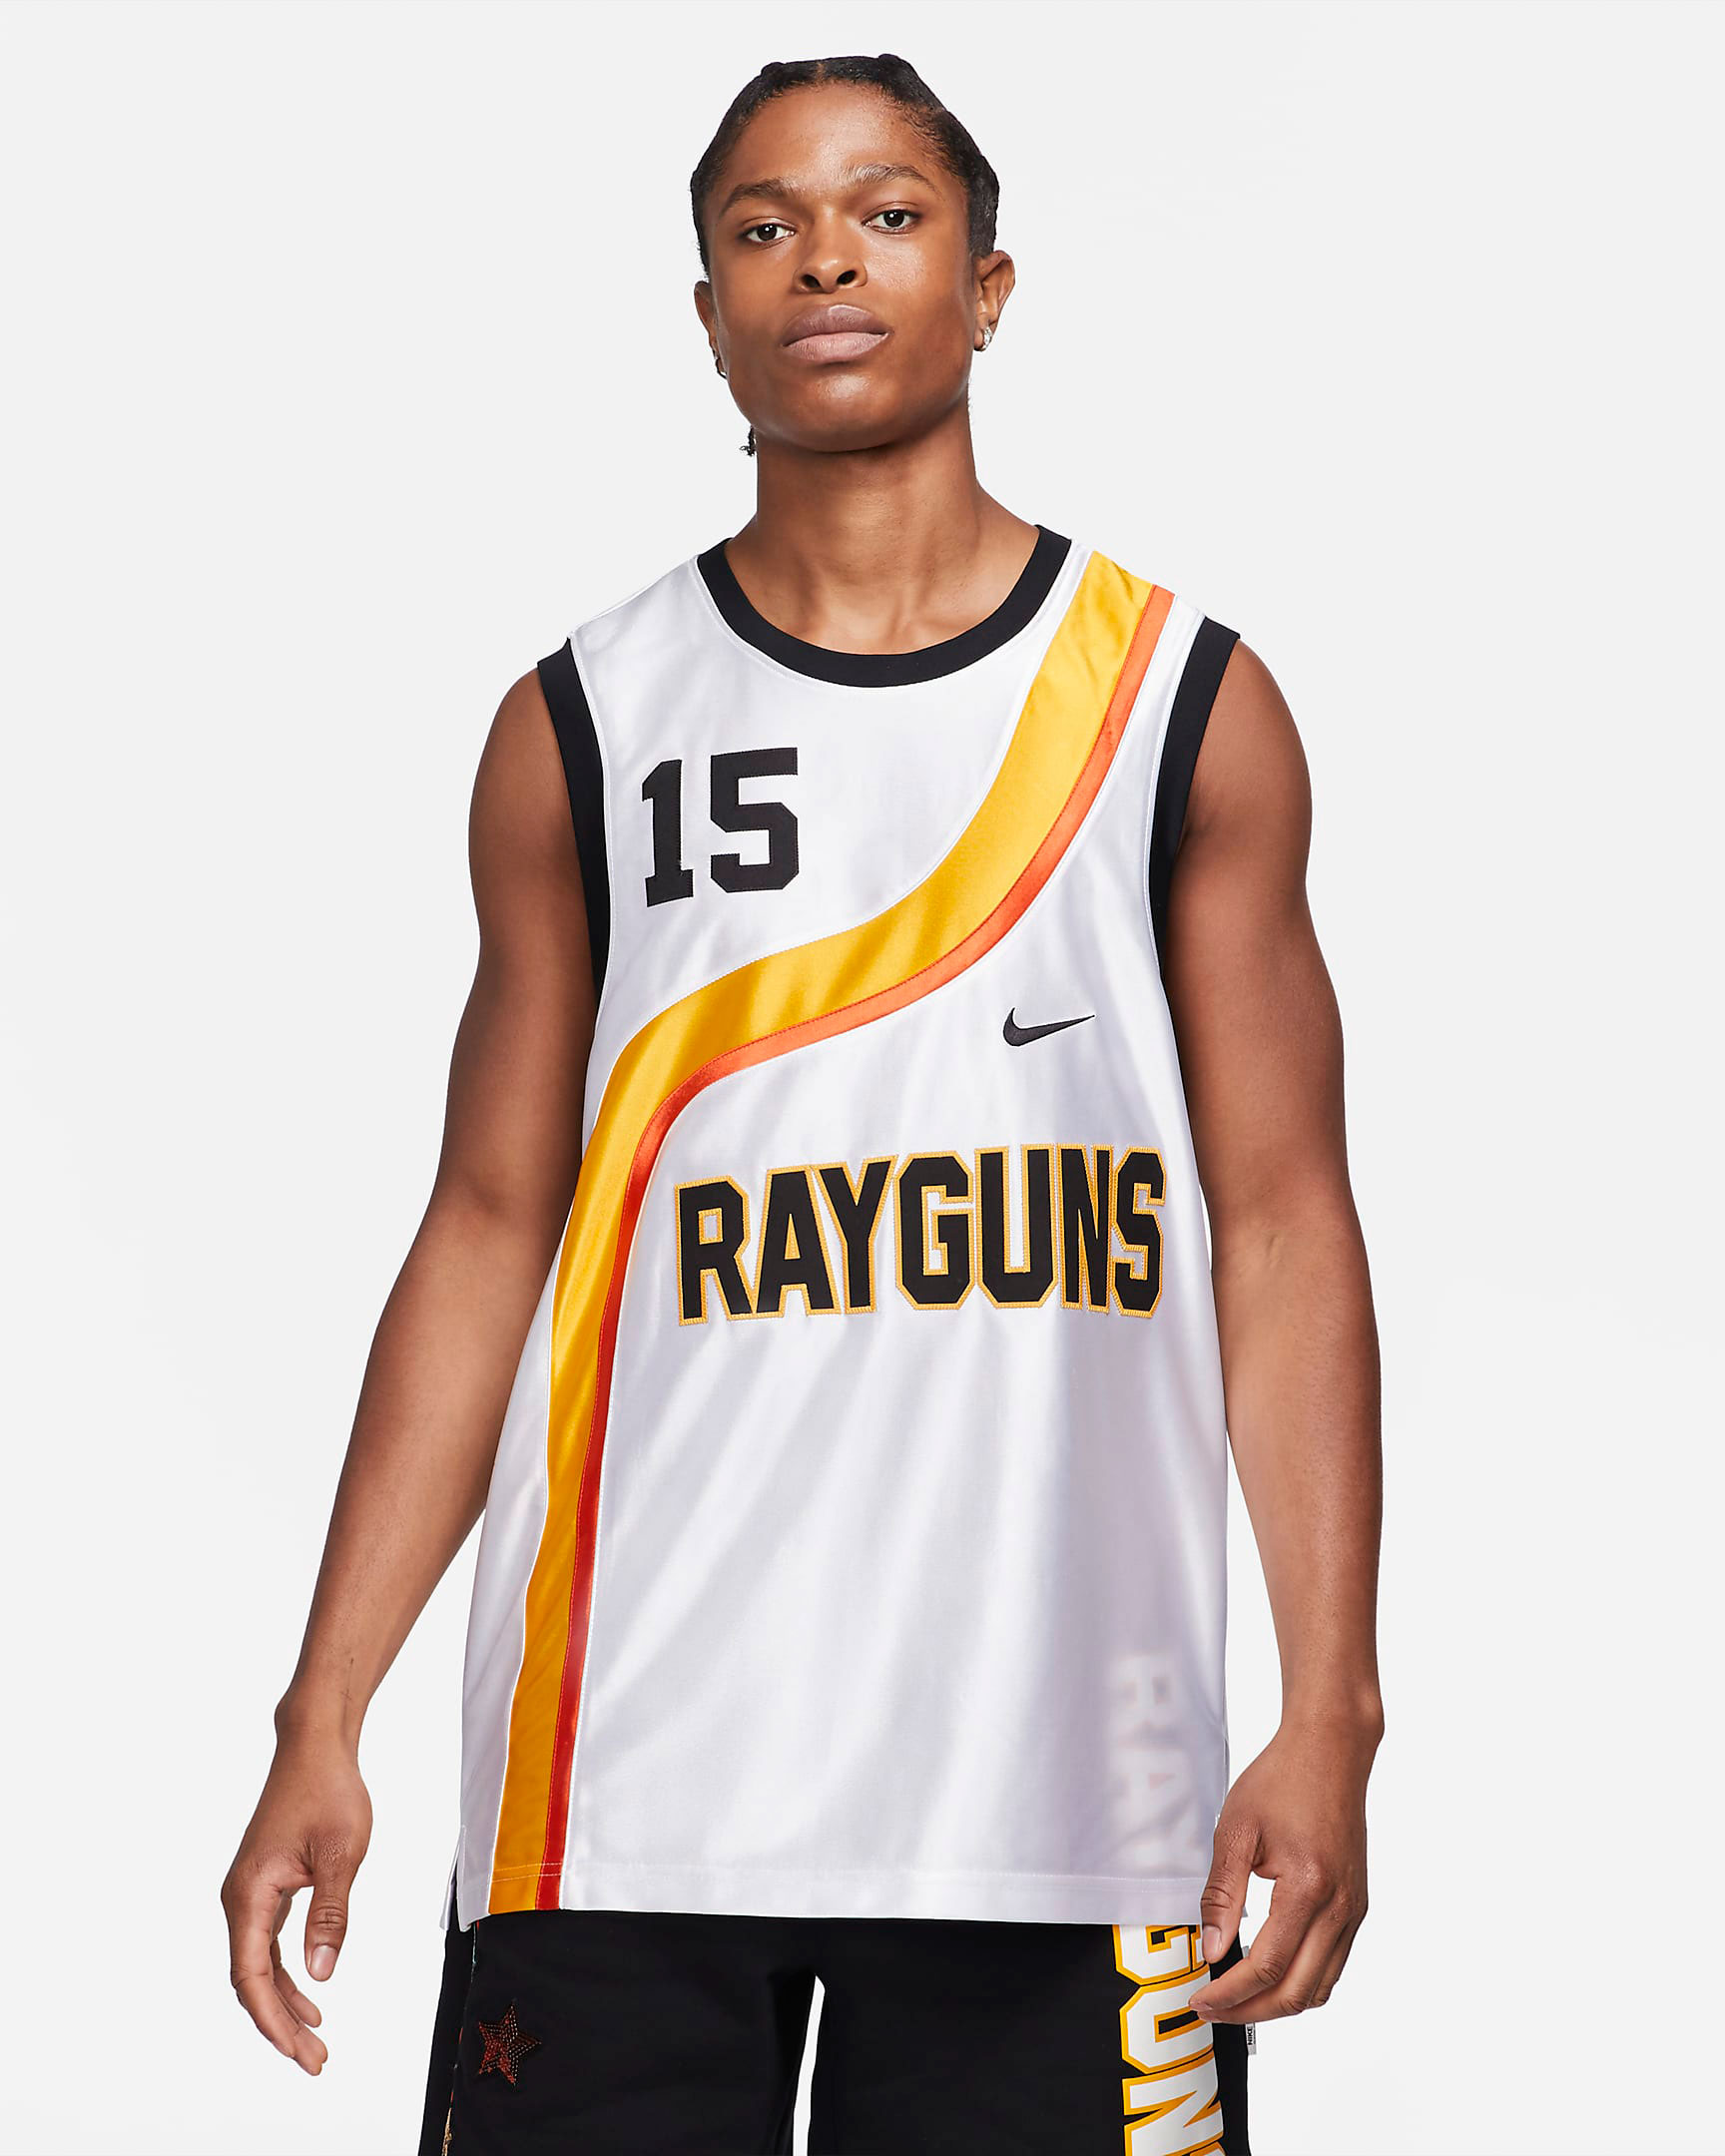 nike-roswell-rayguns-white-carter-jersey-1